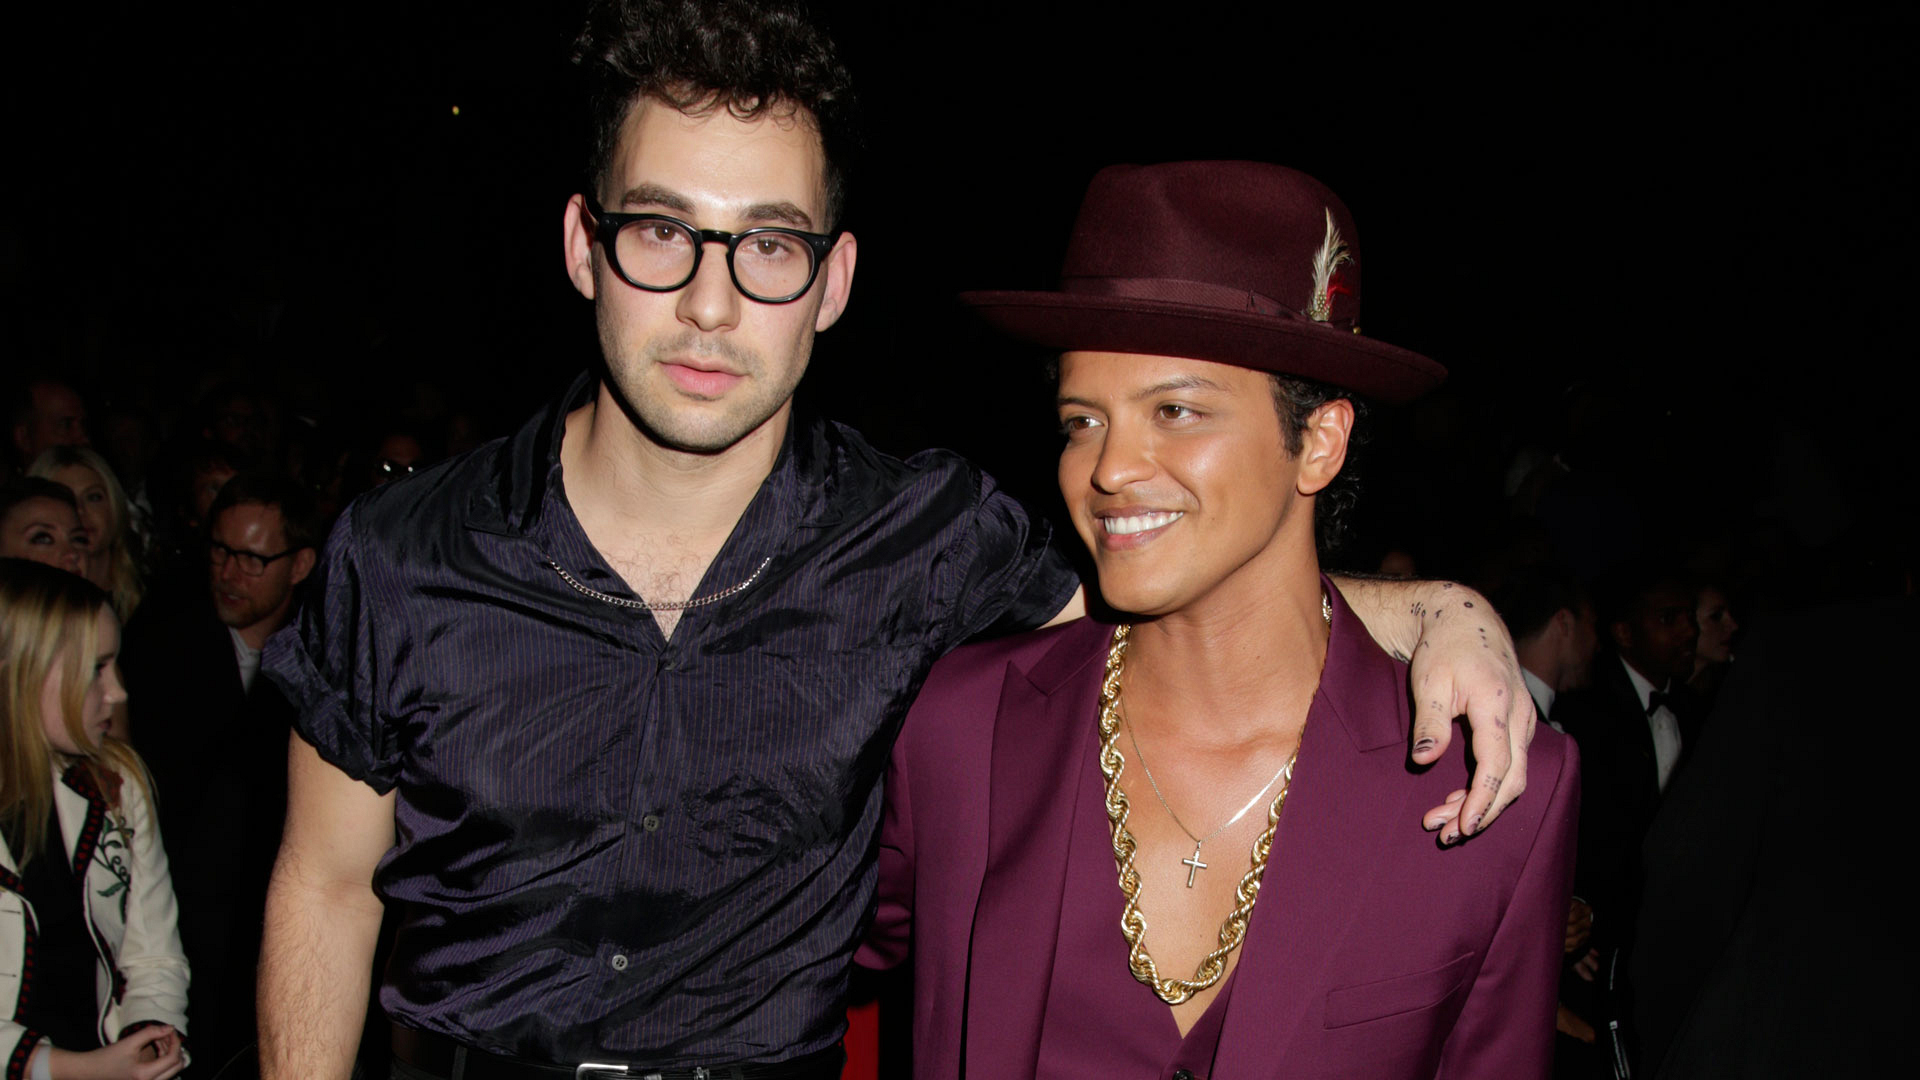 Jack Antonoff poses with producer/performer Bruno Mars